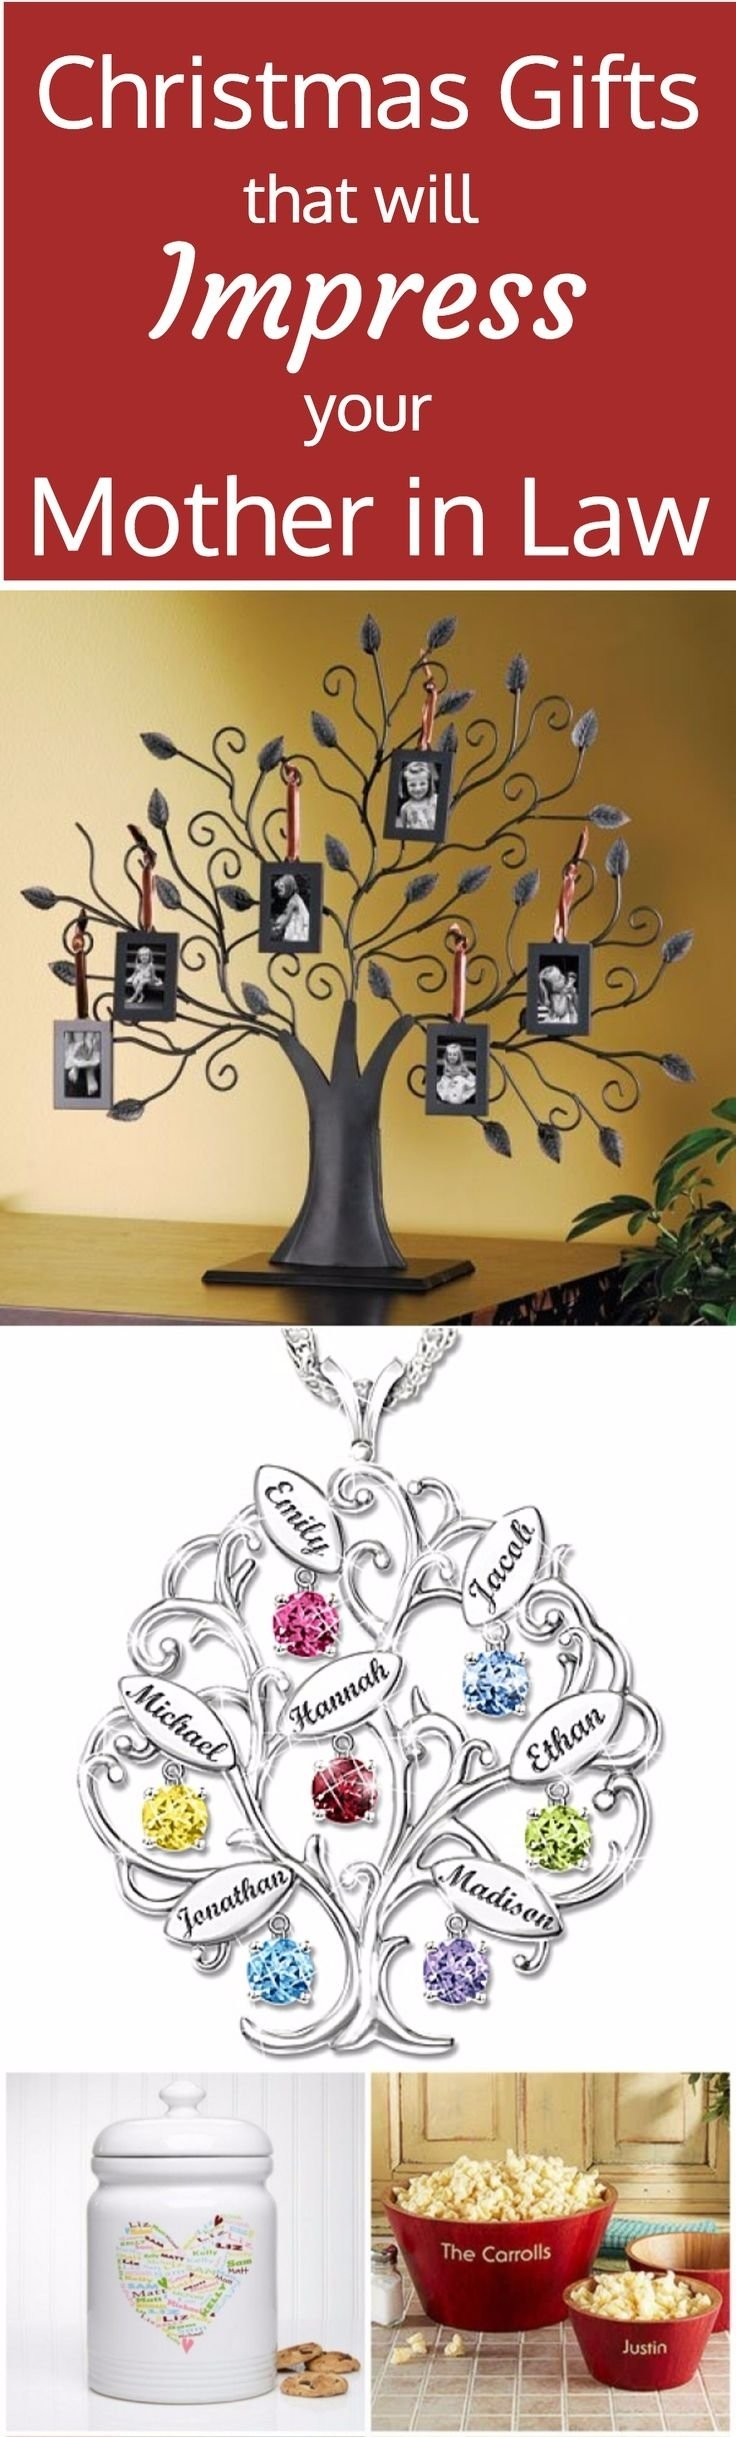 10 Famous Mother In Law Gift Ideas 347 best what to get your mother in law for christmas images on 2 2020